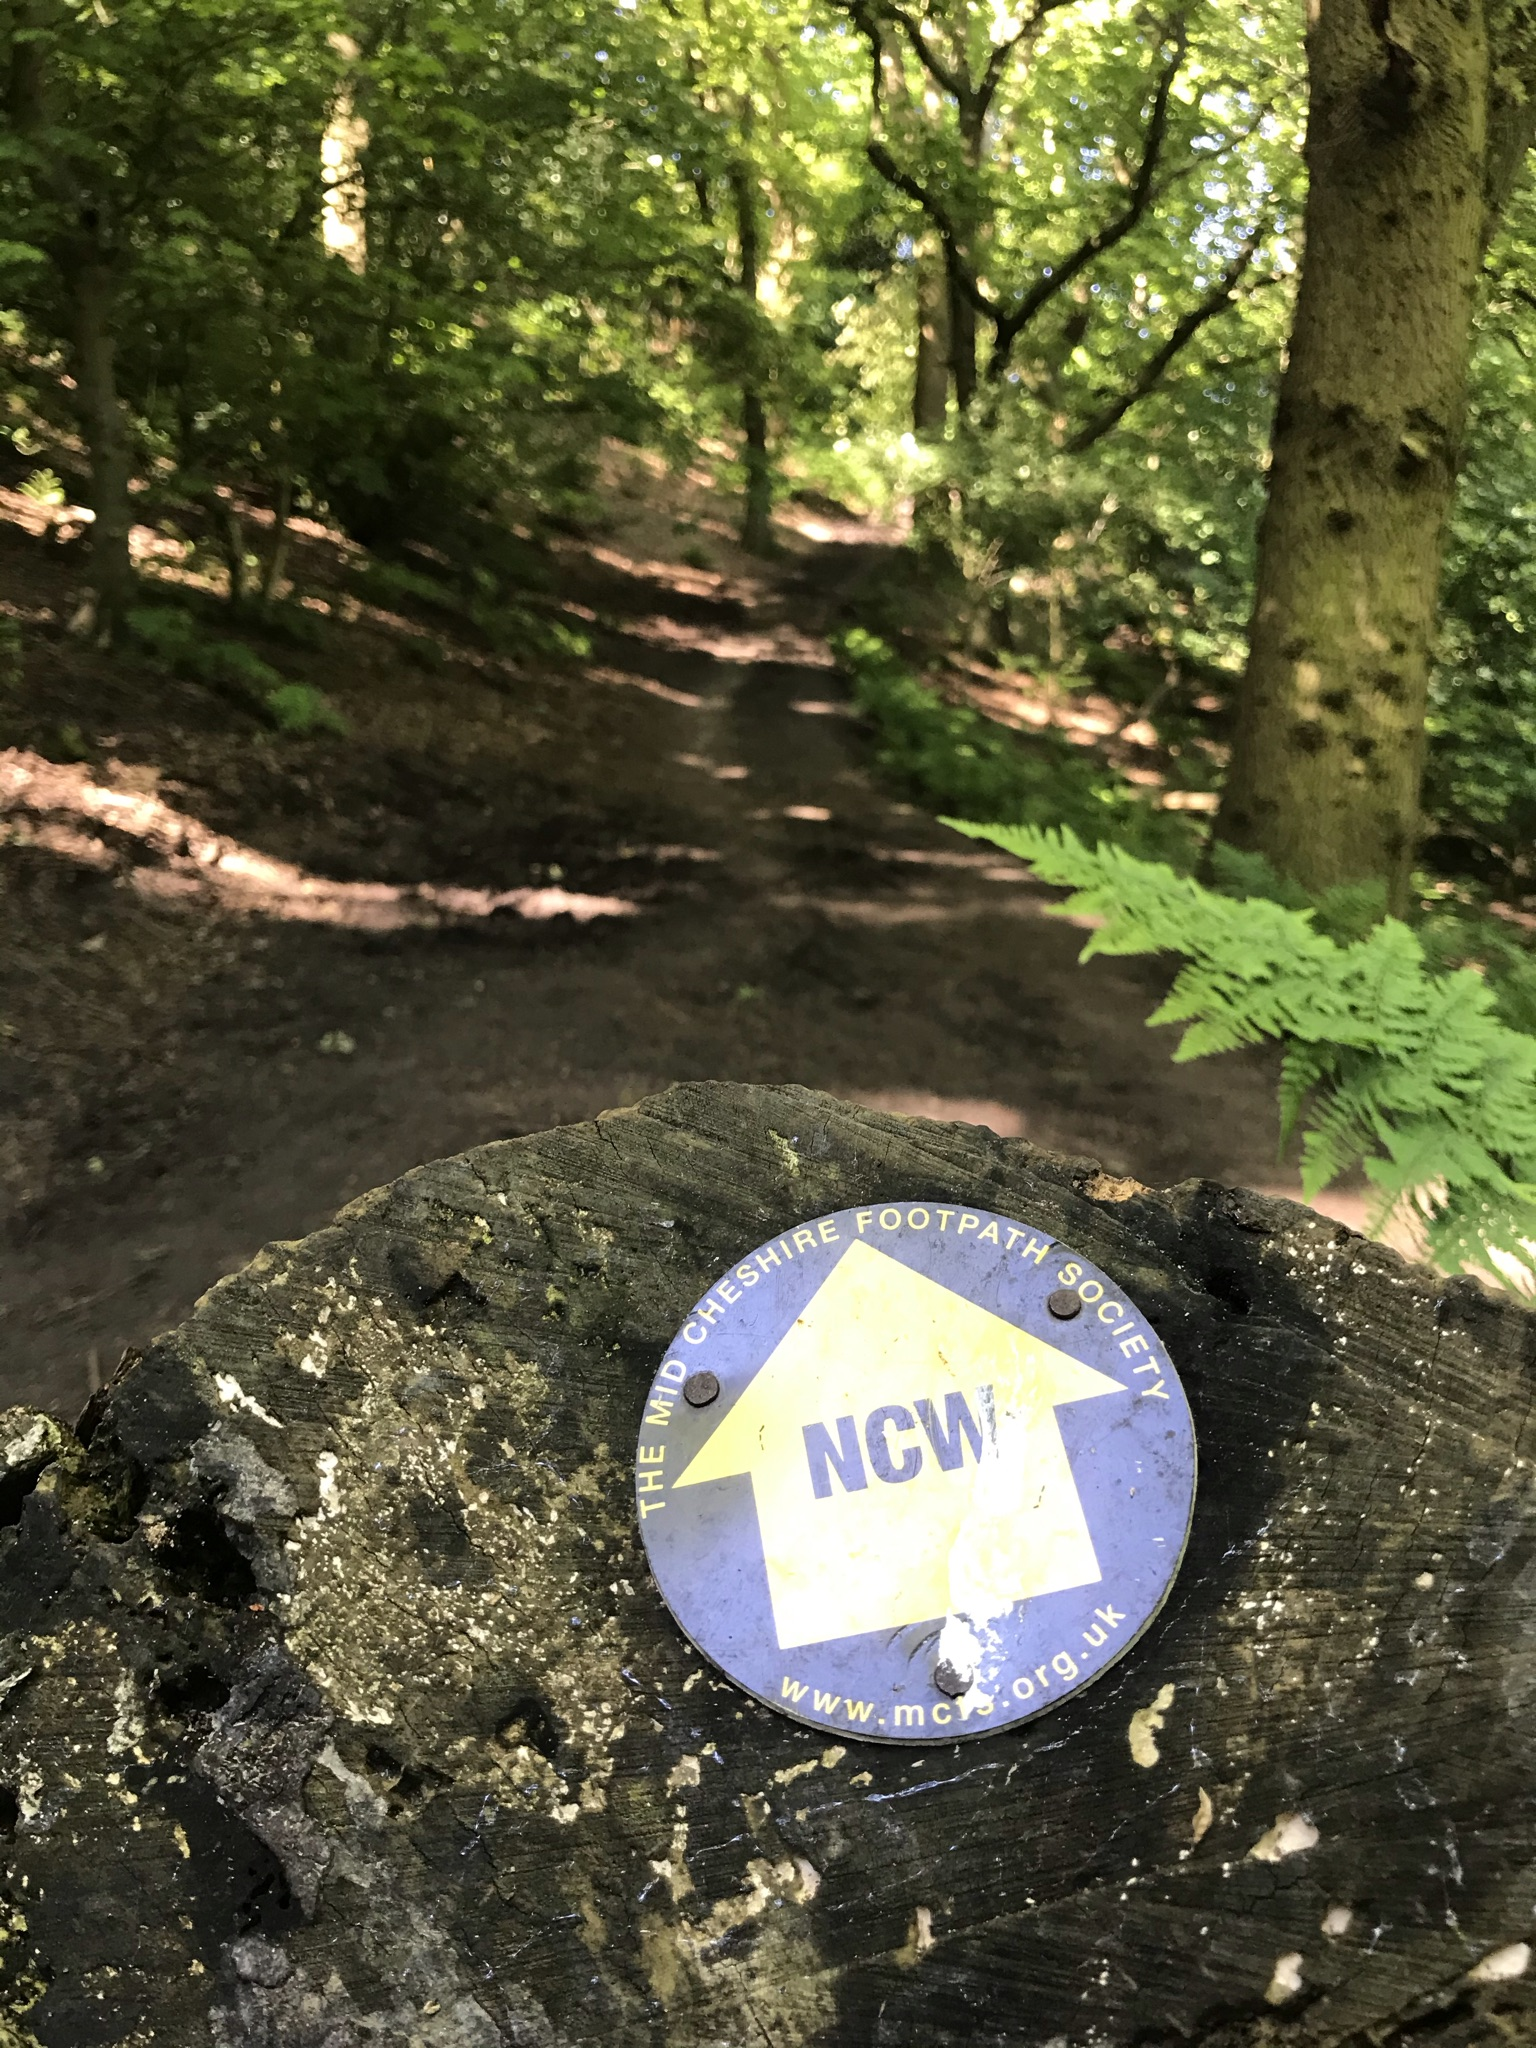 A waymark with NCW on a rock points along a wide sandy path in the trees